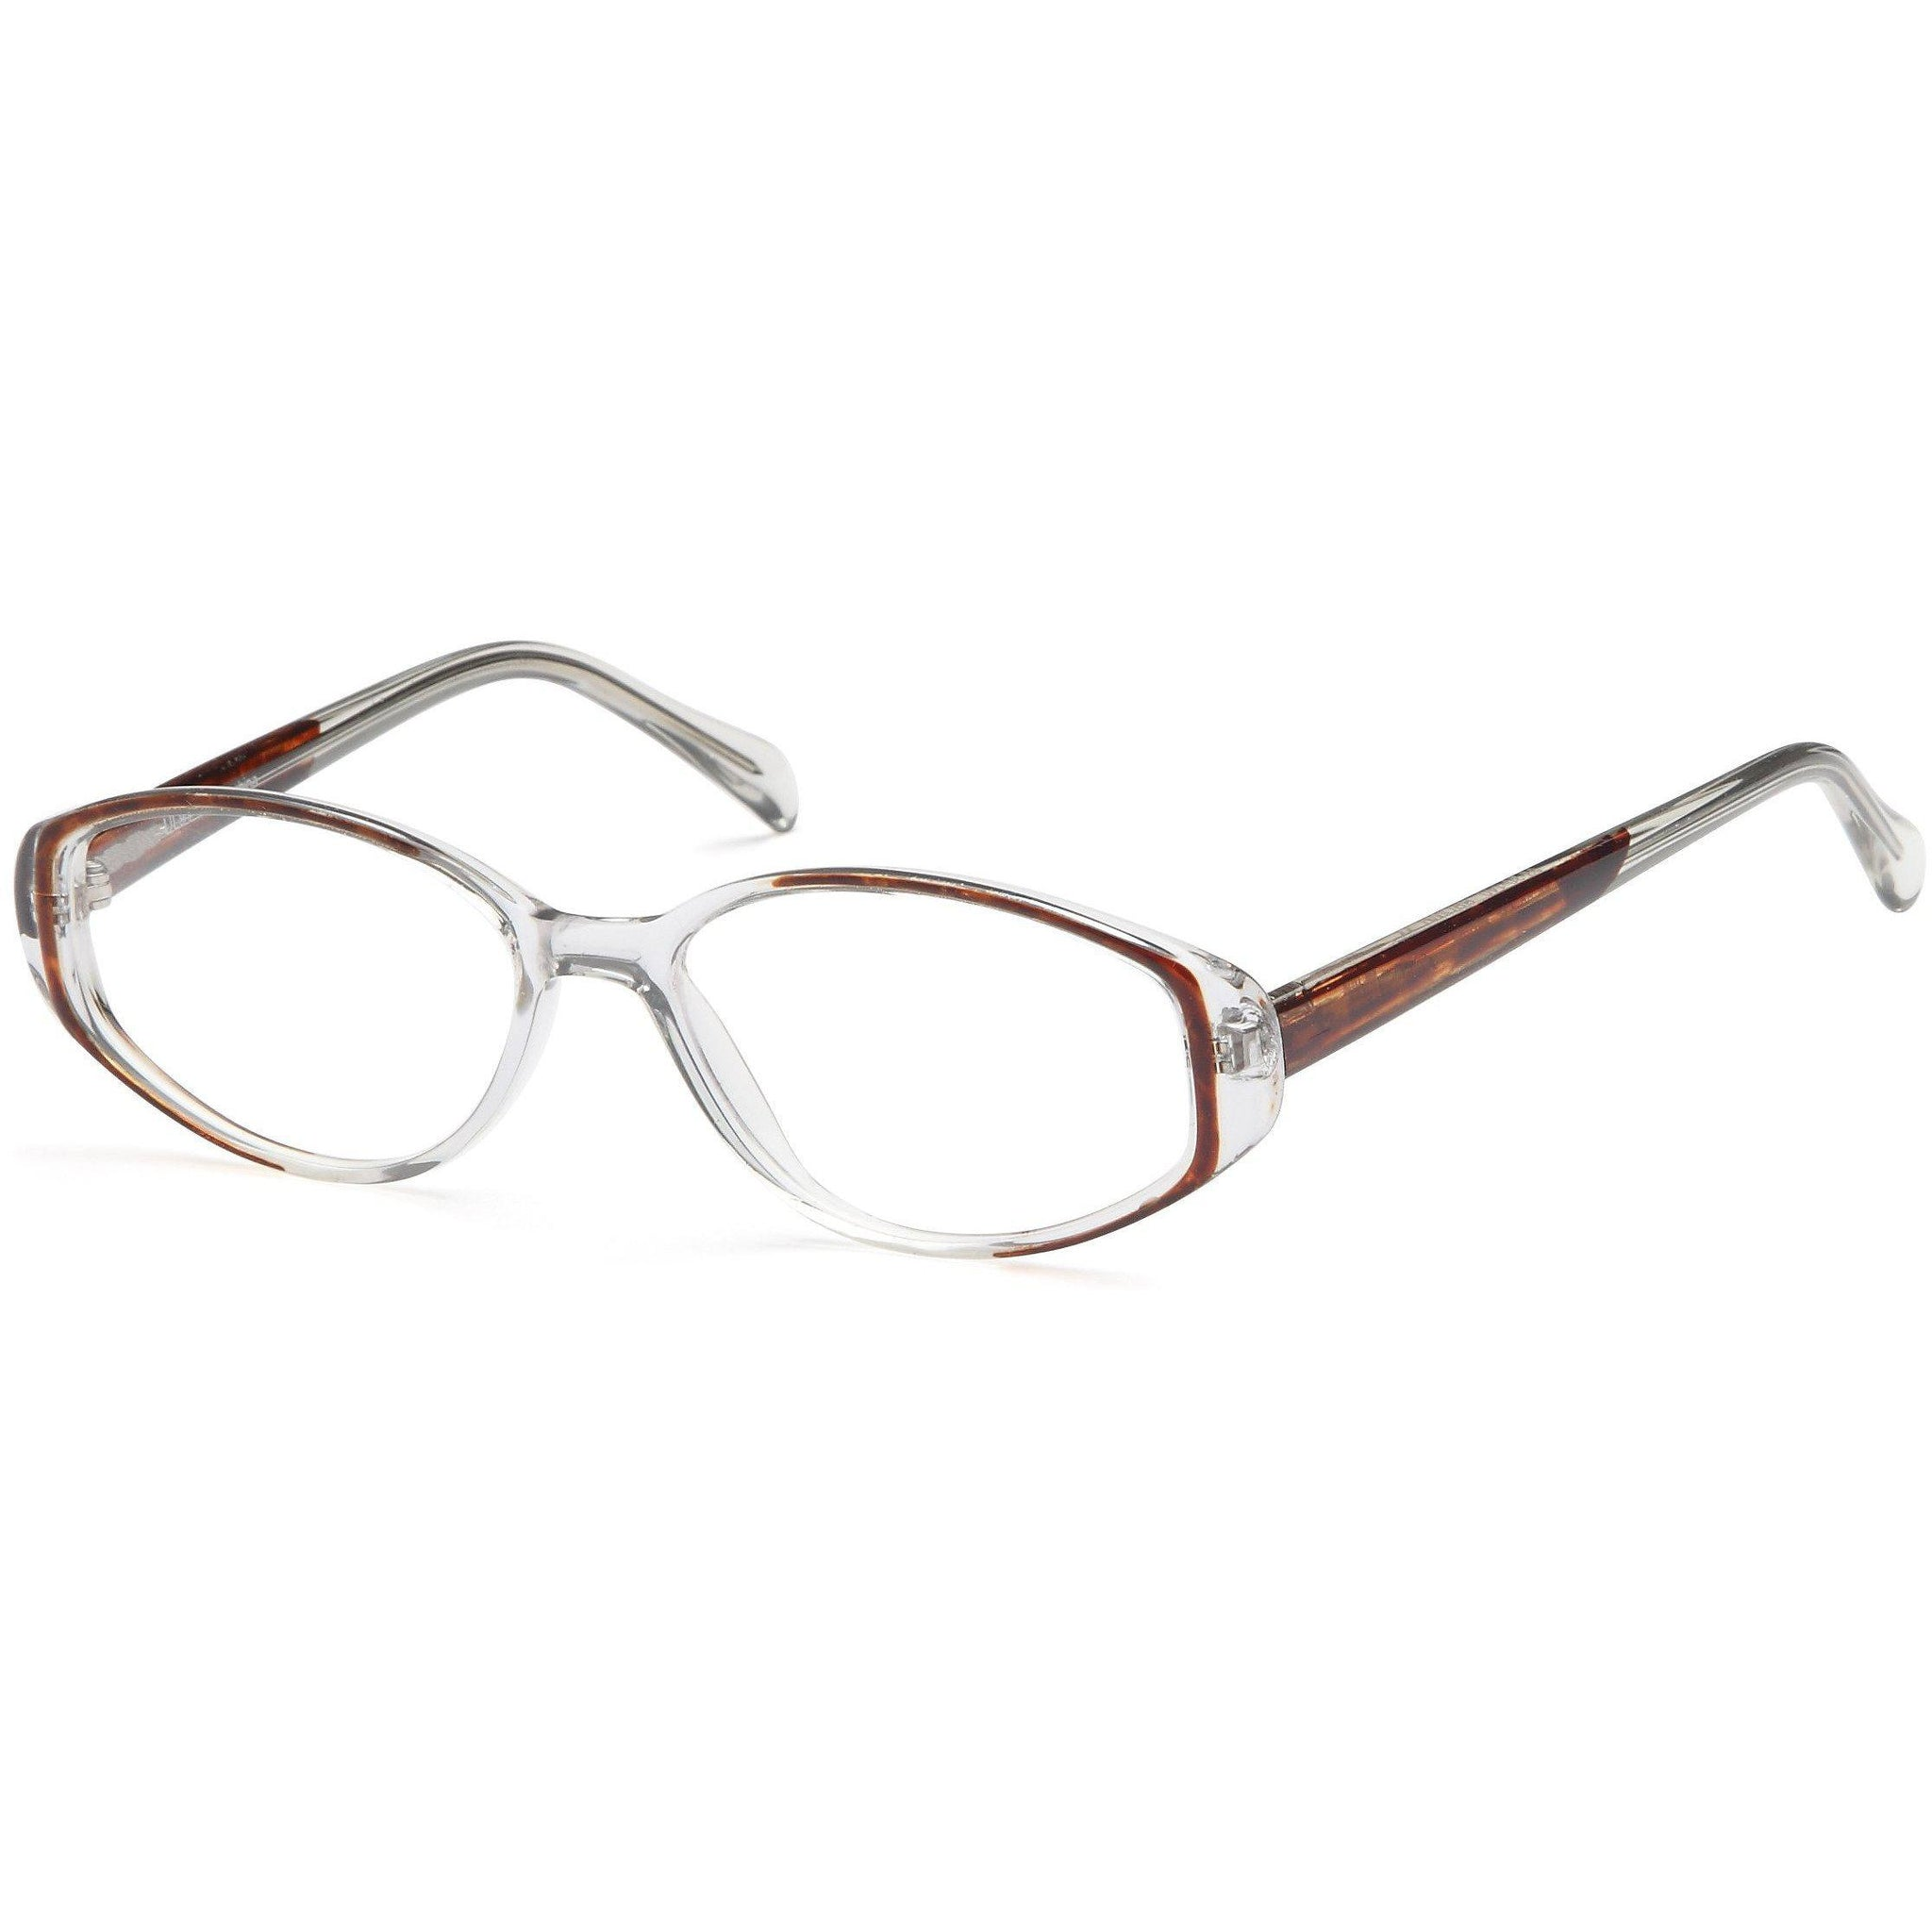 4U Prescription Glasses UL 91 Optical Eyeglasses Frame - timetoshade